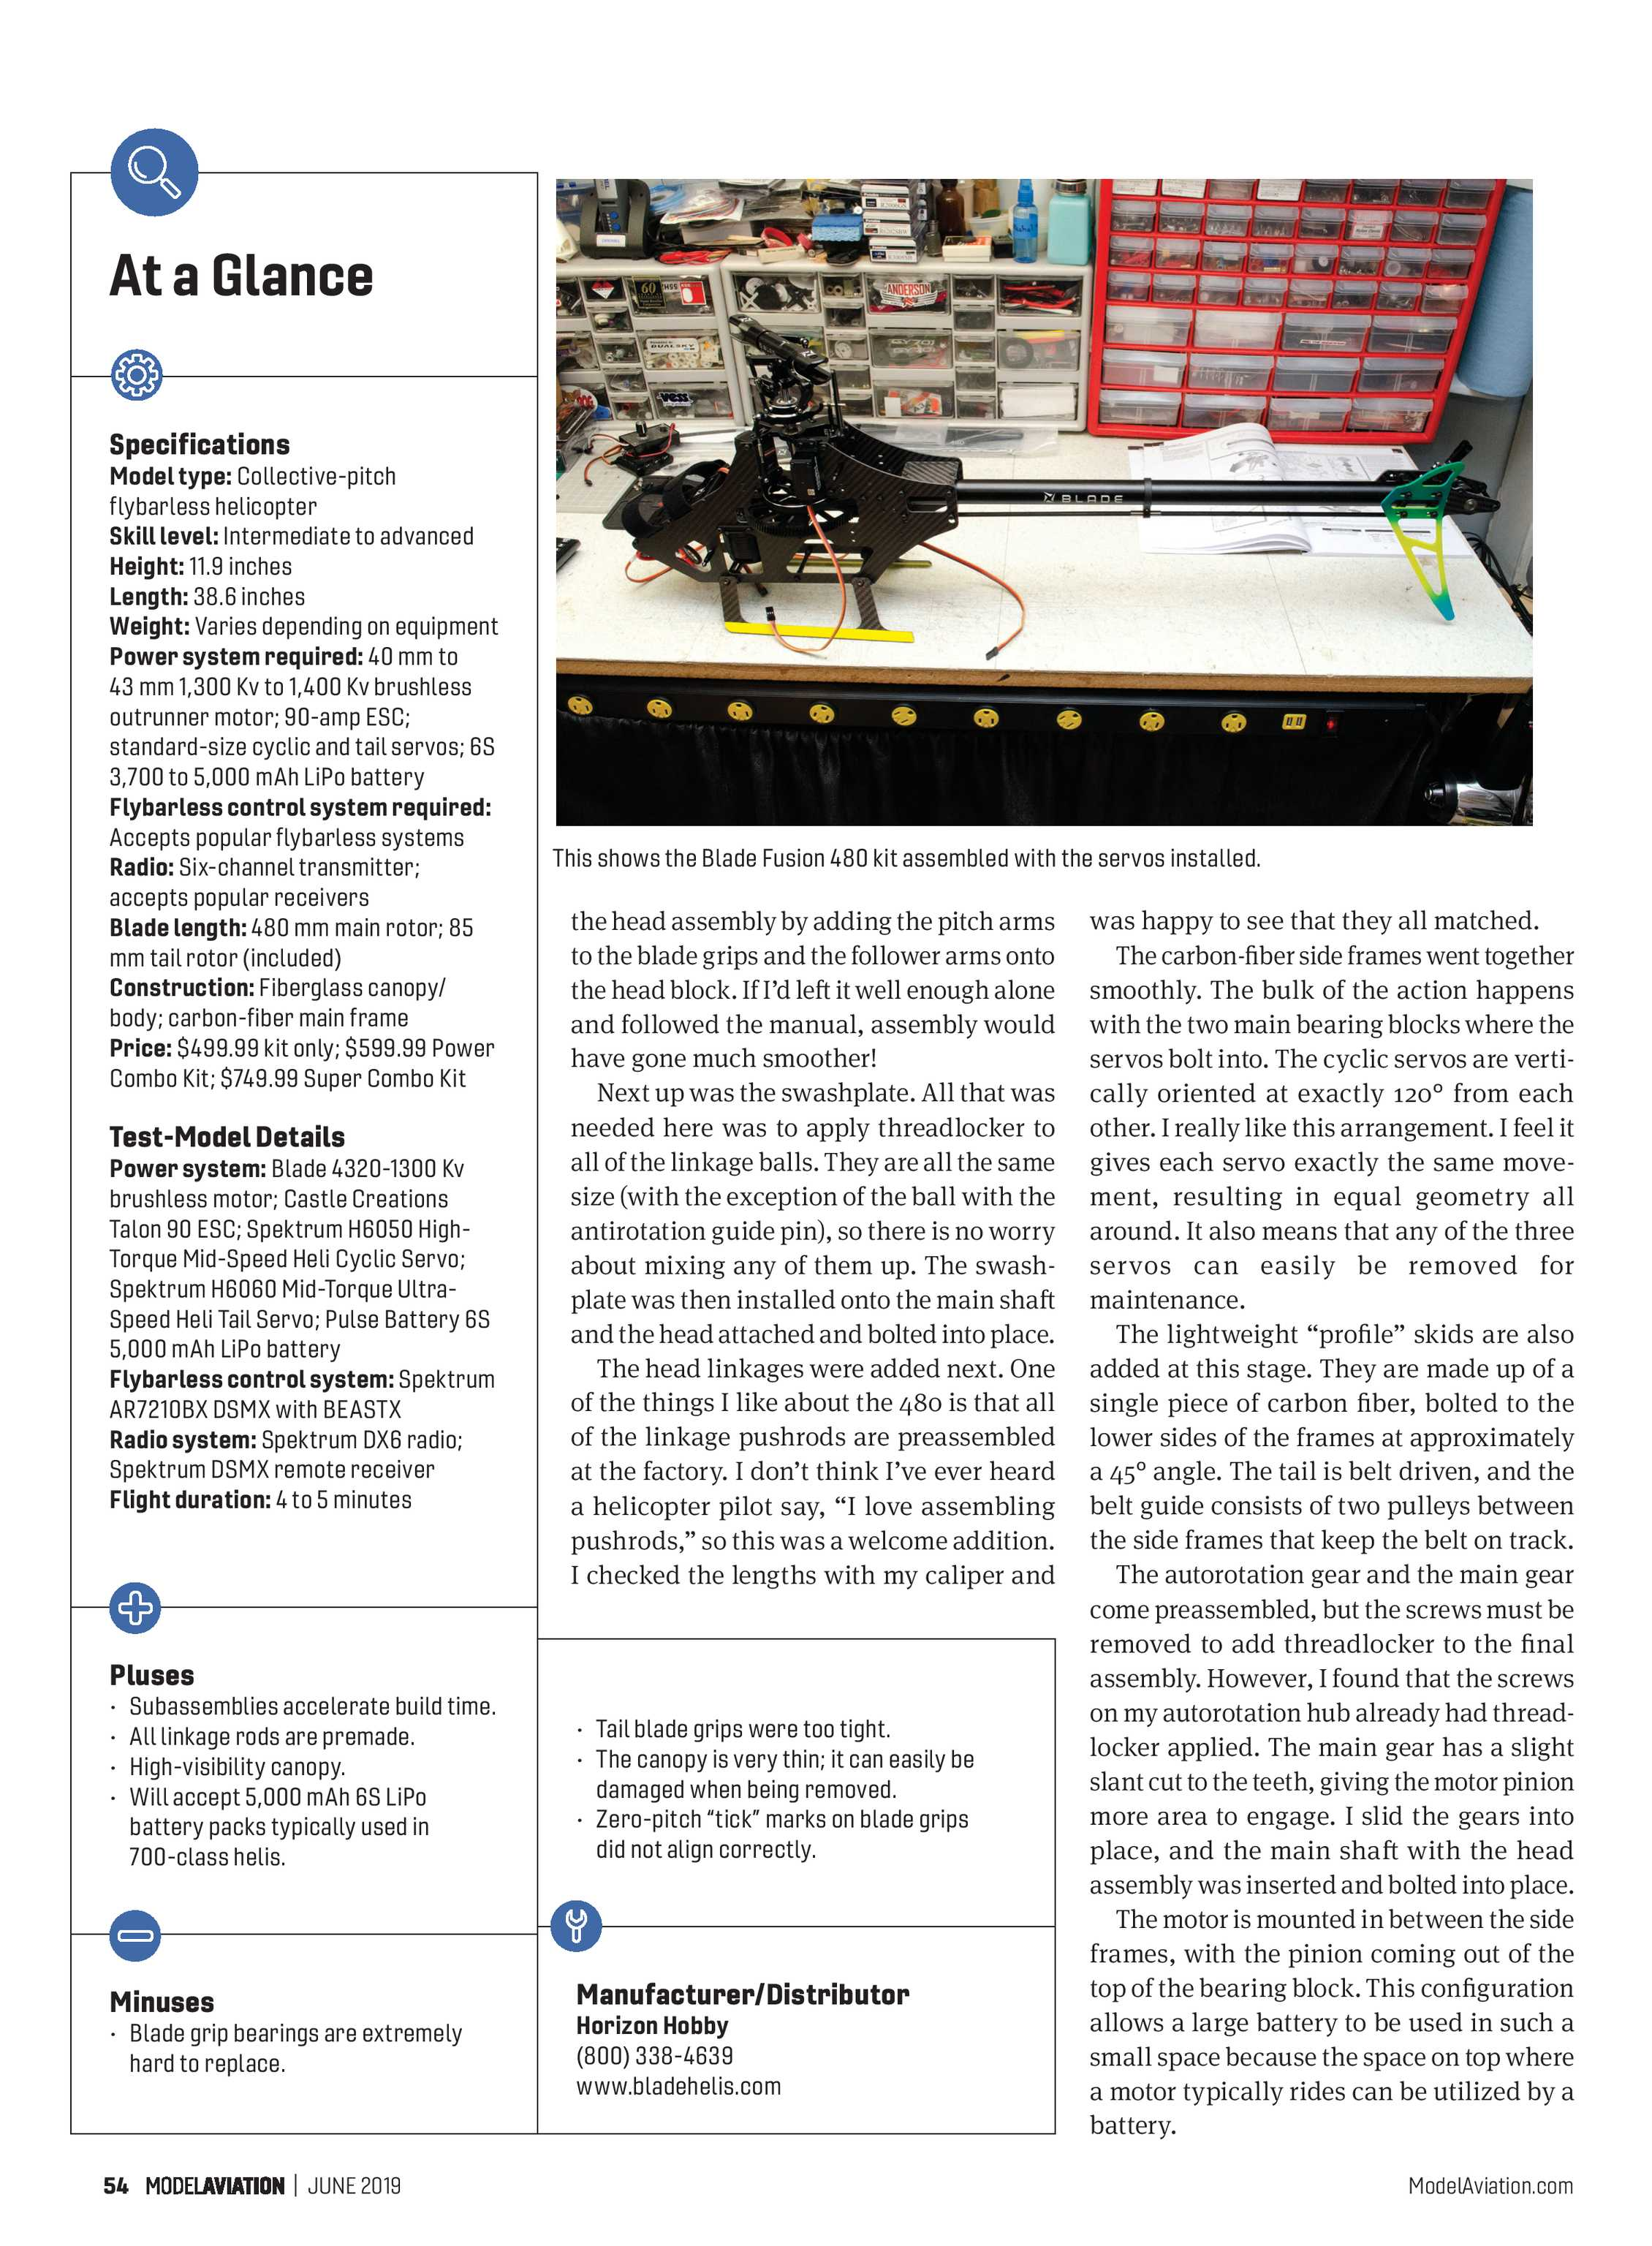 Model Aviation - June 2019 - page 53